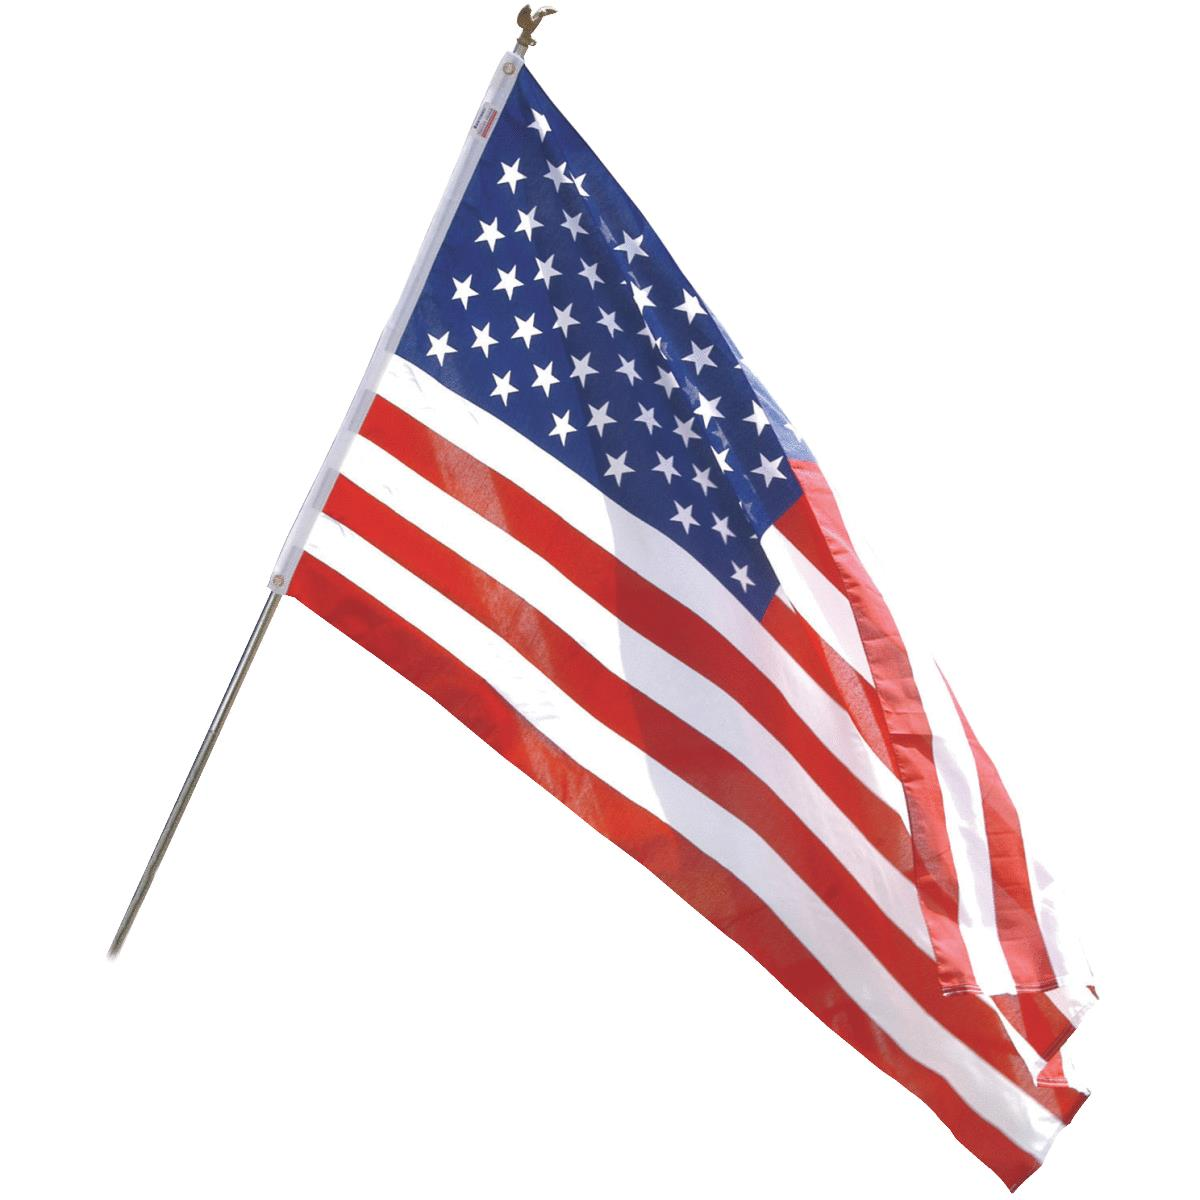 Valley Forge All-American 6 Ft. Flag Pole Kit